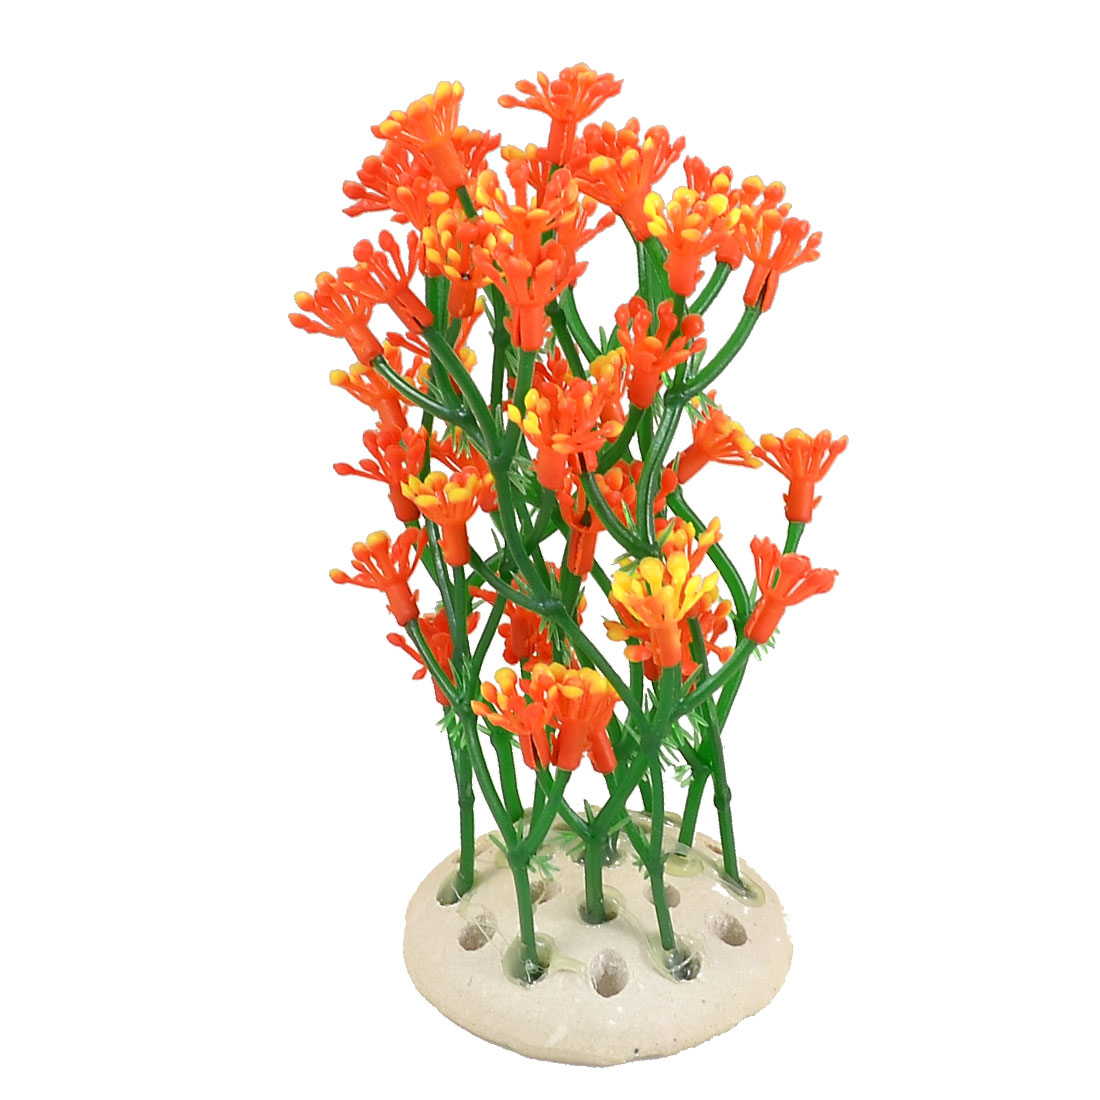 "4.7"" Height Emulational Aquatic Plants Orange Red Flower for Fish Tank"